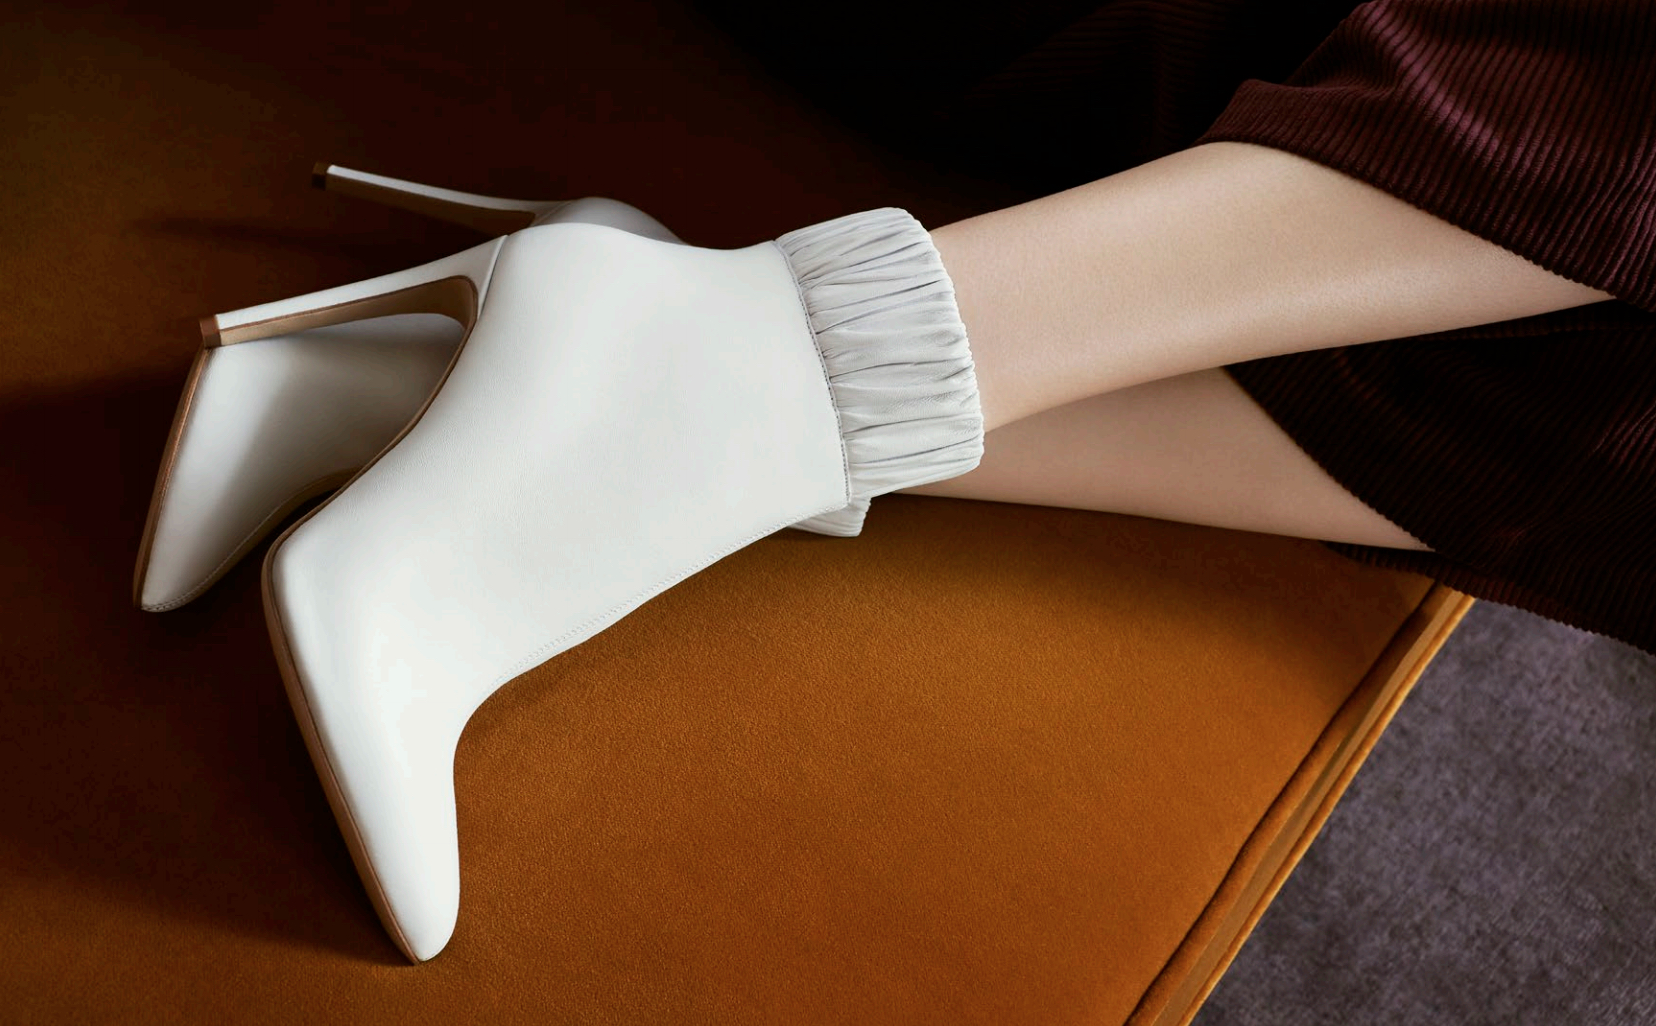 The Maud: White leather stiletto heel boot with ruched ankle. Coming soon.